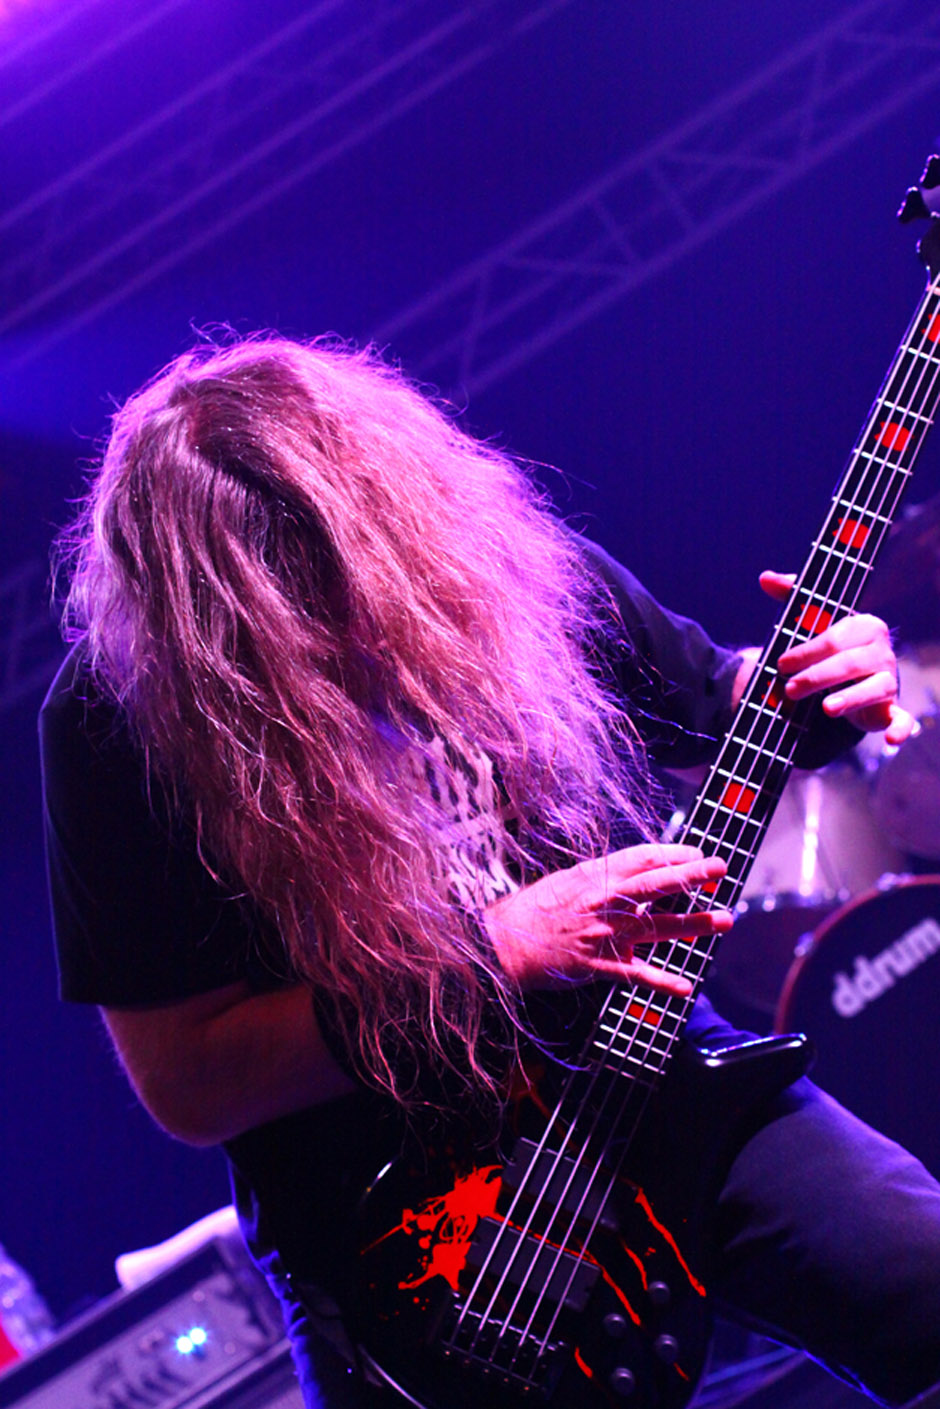 Cannibal Corpse live, 22.02.2013, Geiselwind, Music Hall